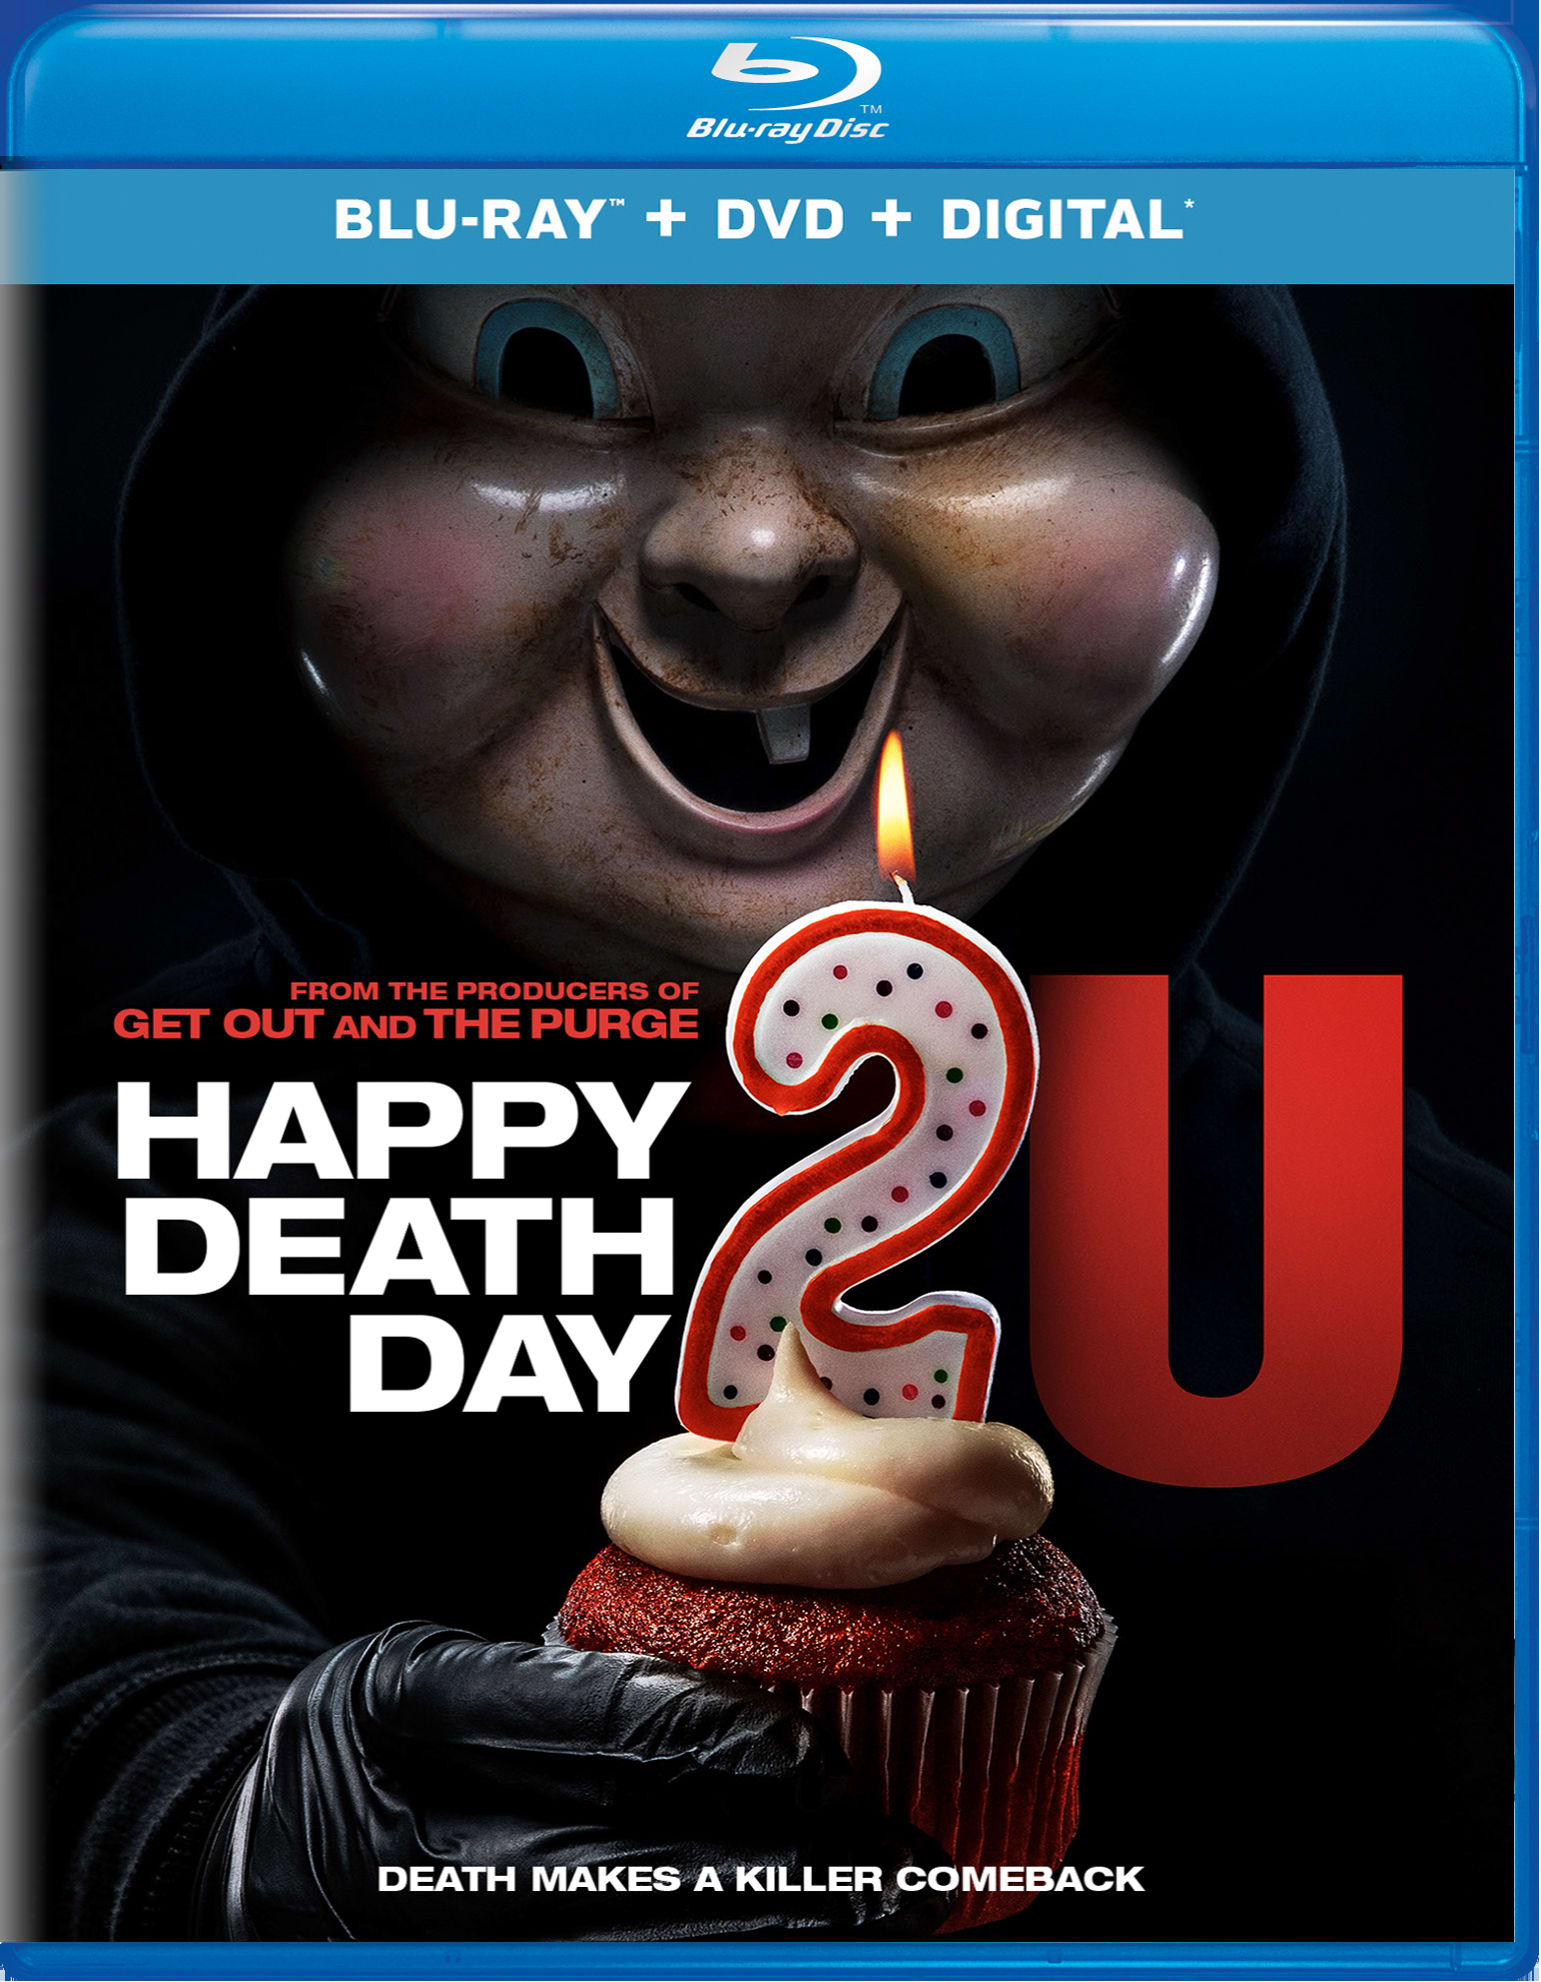 Happy Death Day 2u (DVD + Digital) [Blu-ray]